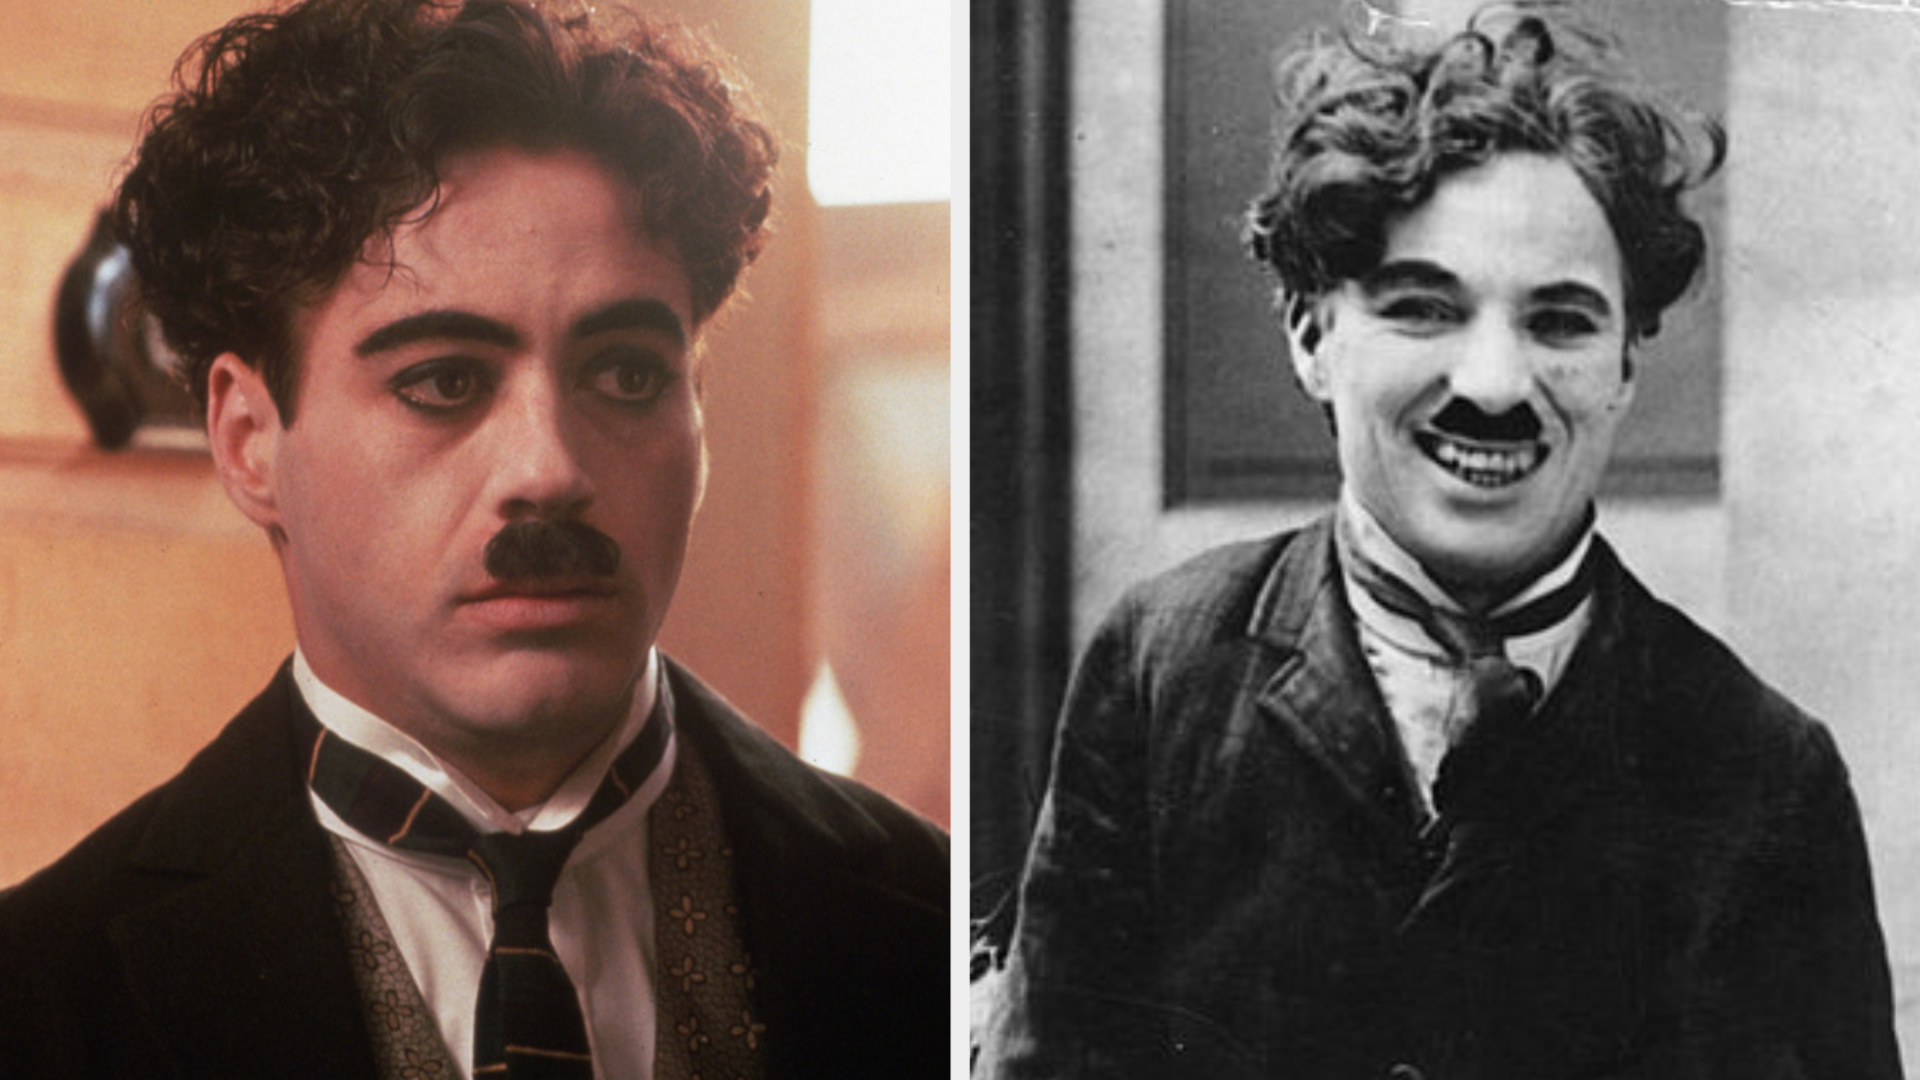 Robert Downey Jr. as Charlie Chaplin with curly hair and a small mustache, wearing a worn jacket and tie, with a serious expression on his face; Charlie Chaplin with curly hair and a small mustache, wearing a coat and tie, giving a happy and playful smile